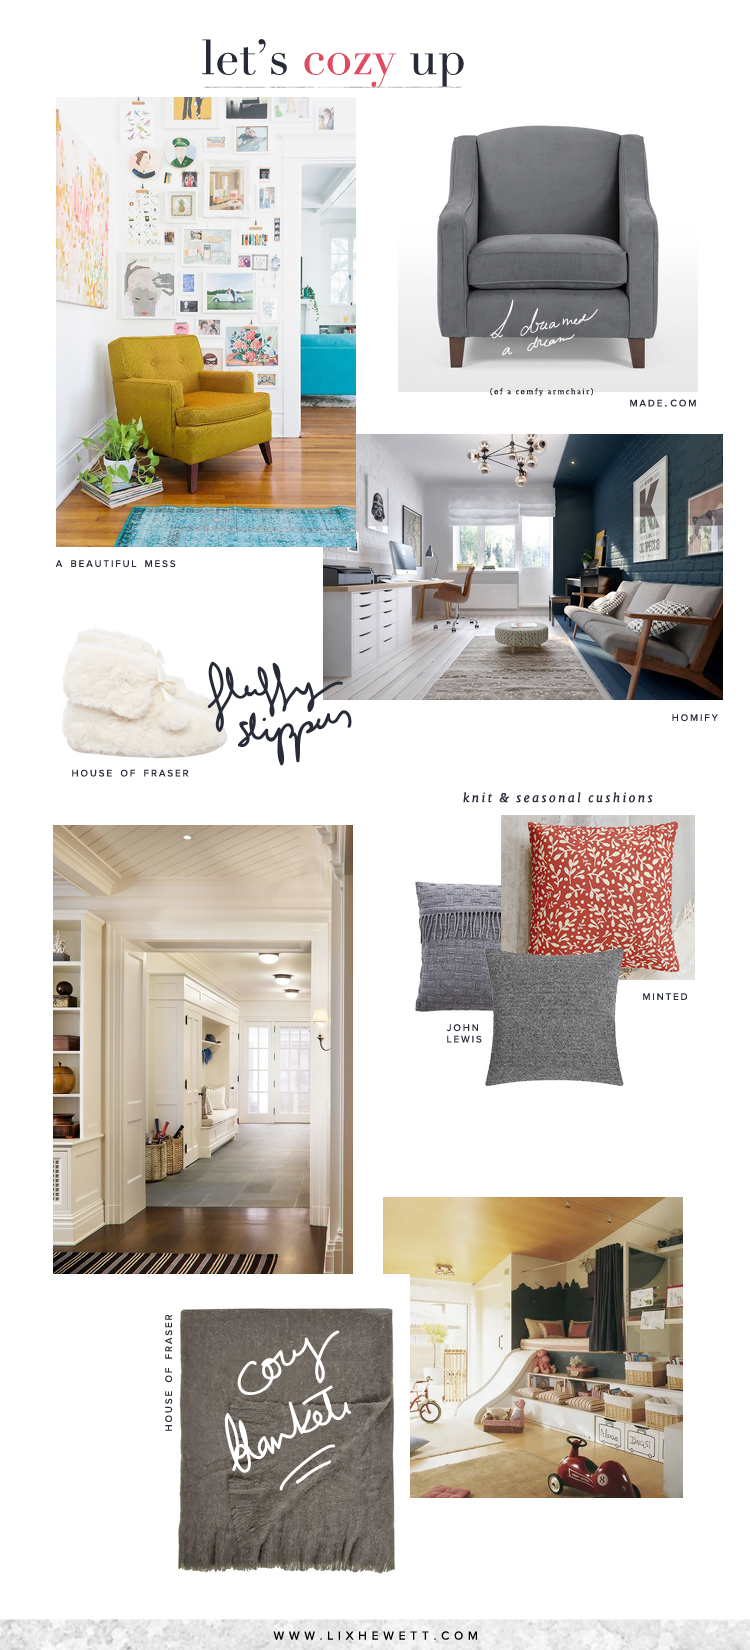 Home / Make Your Spaces Extra Cozy For the Cold